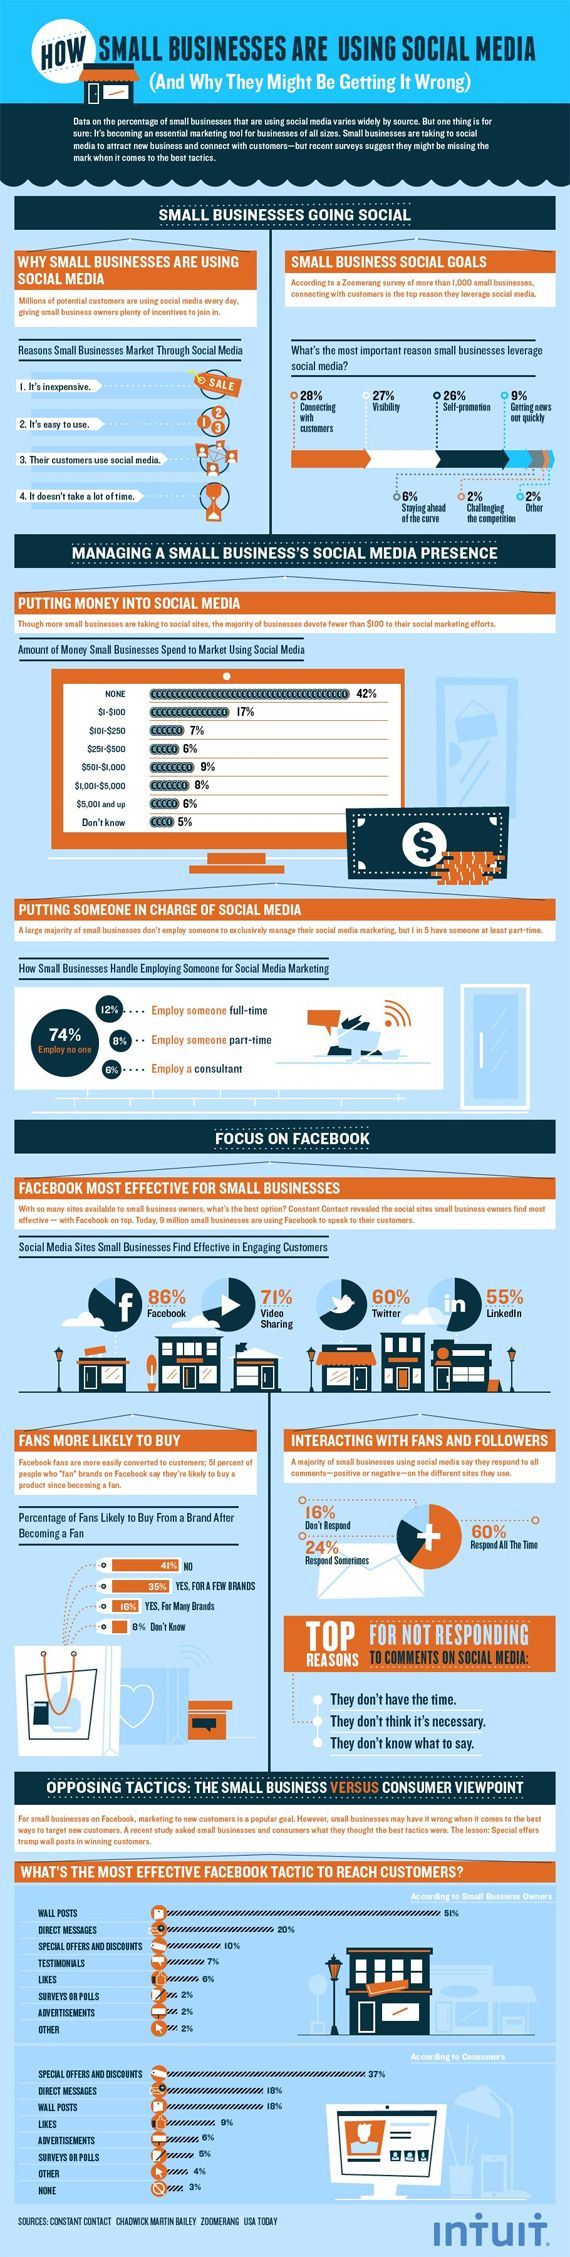 Small Businesses: Are You Getting Social Media Wrong? [Infographic]